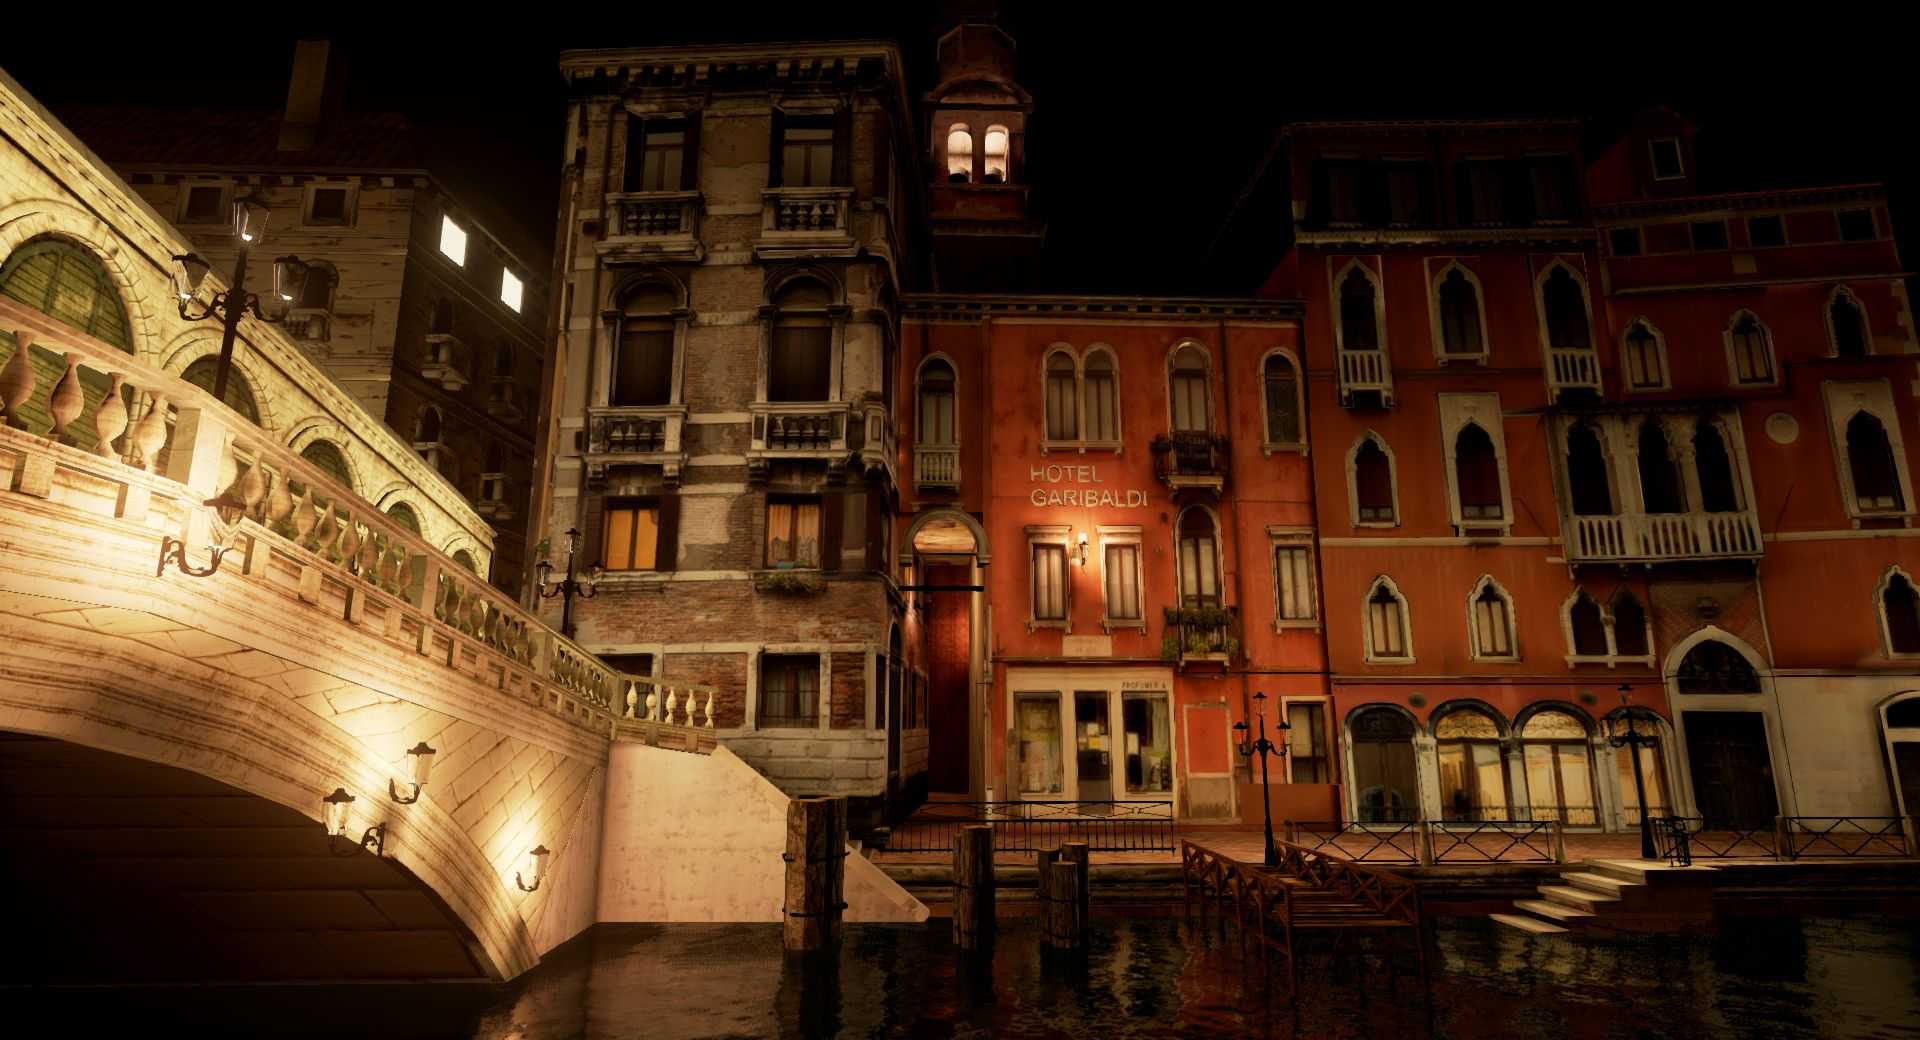 venice_screenshot09.jpg